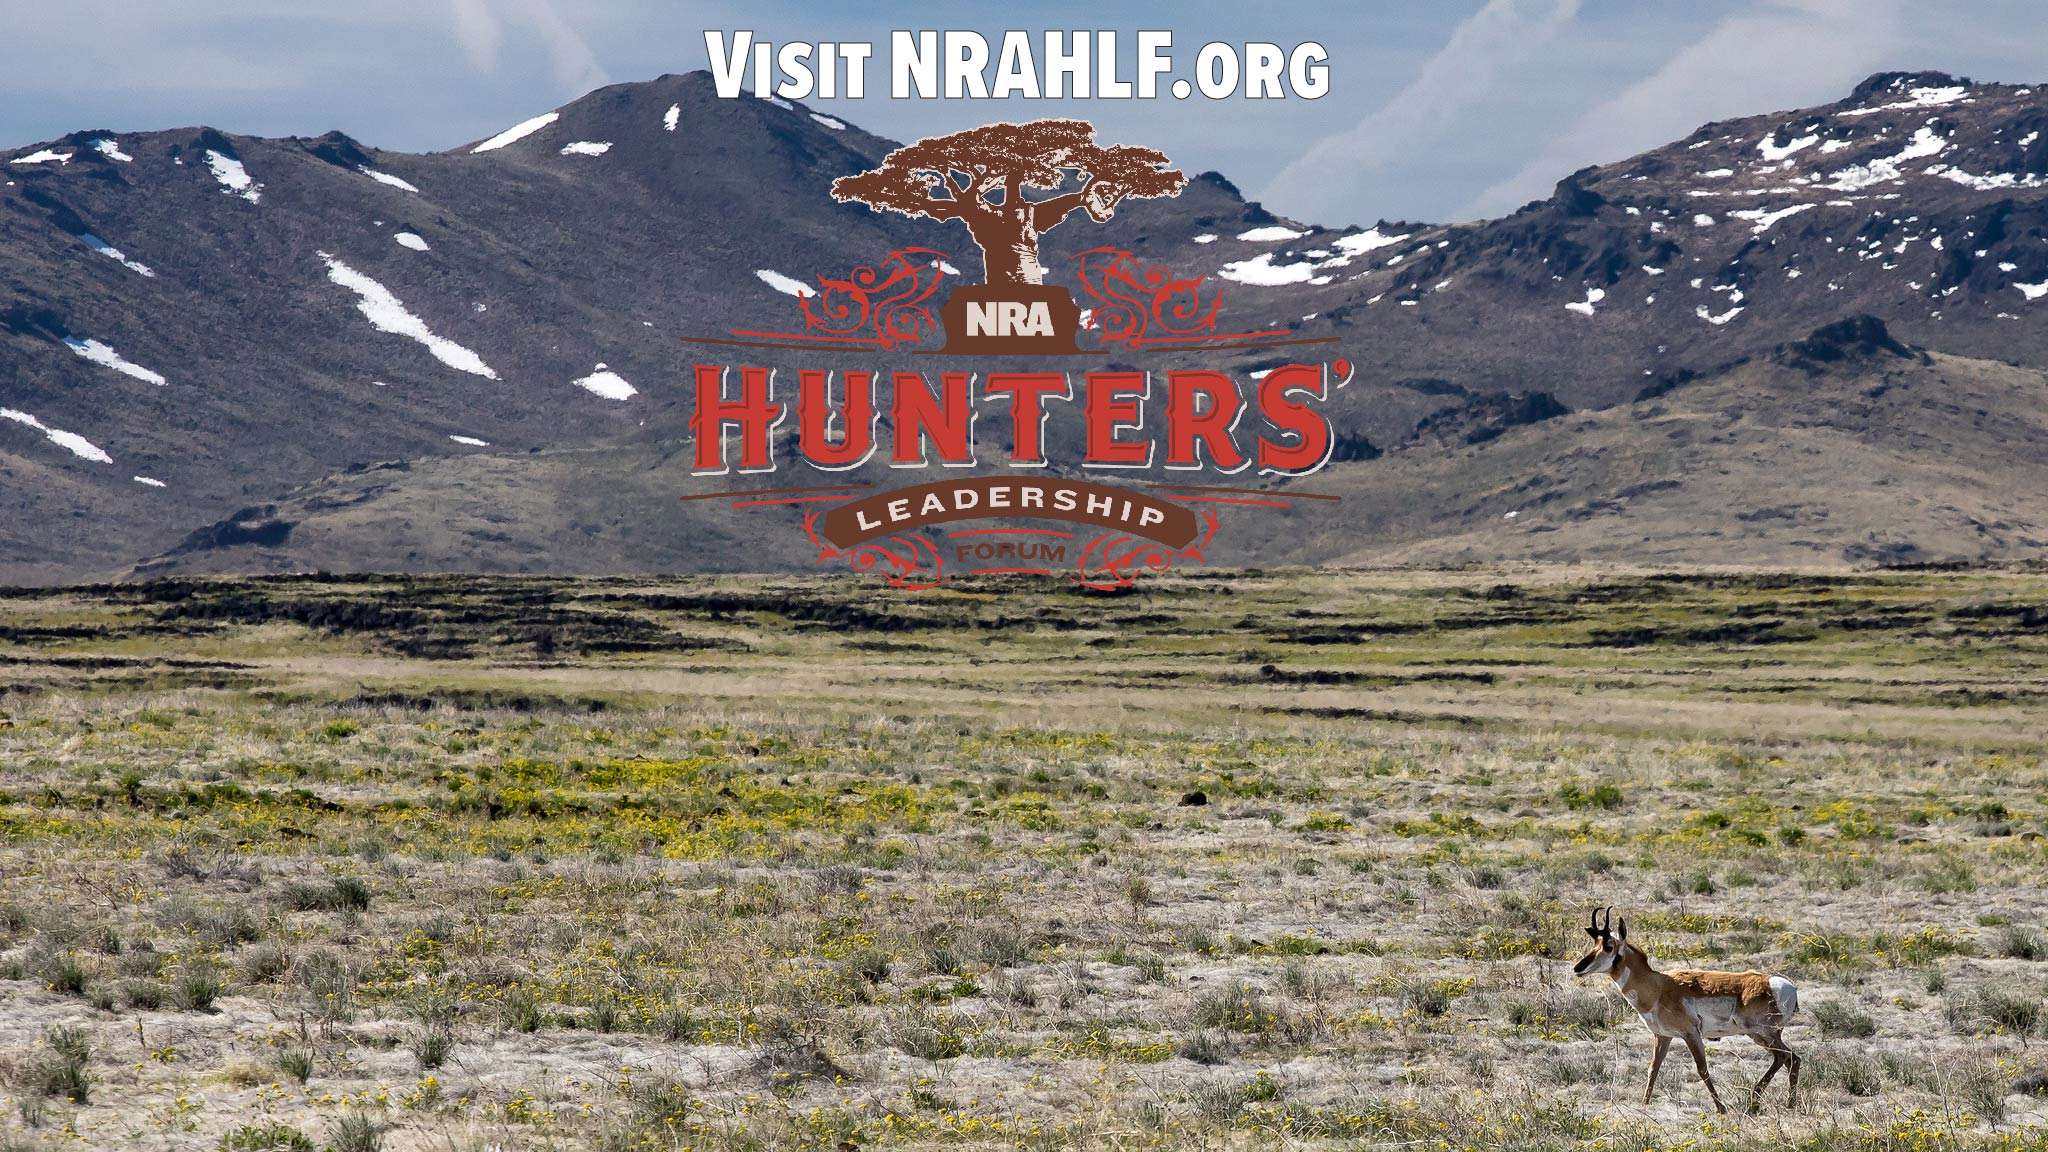 Why the NRA Hunters' Leadership Forum Site Is Hunters' Top Tool